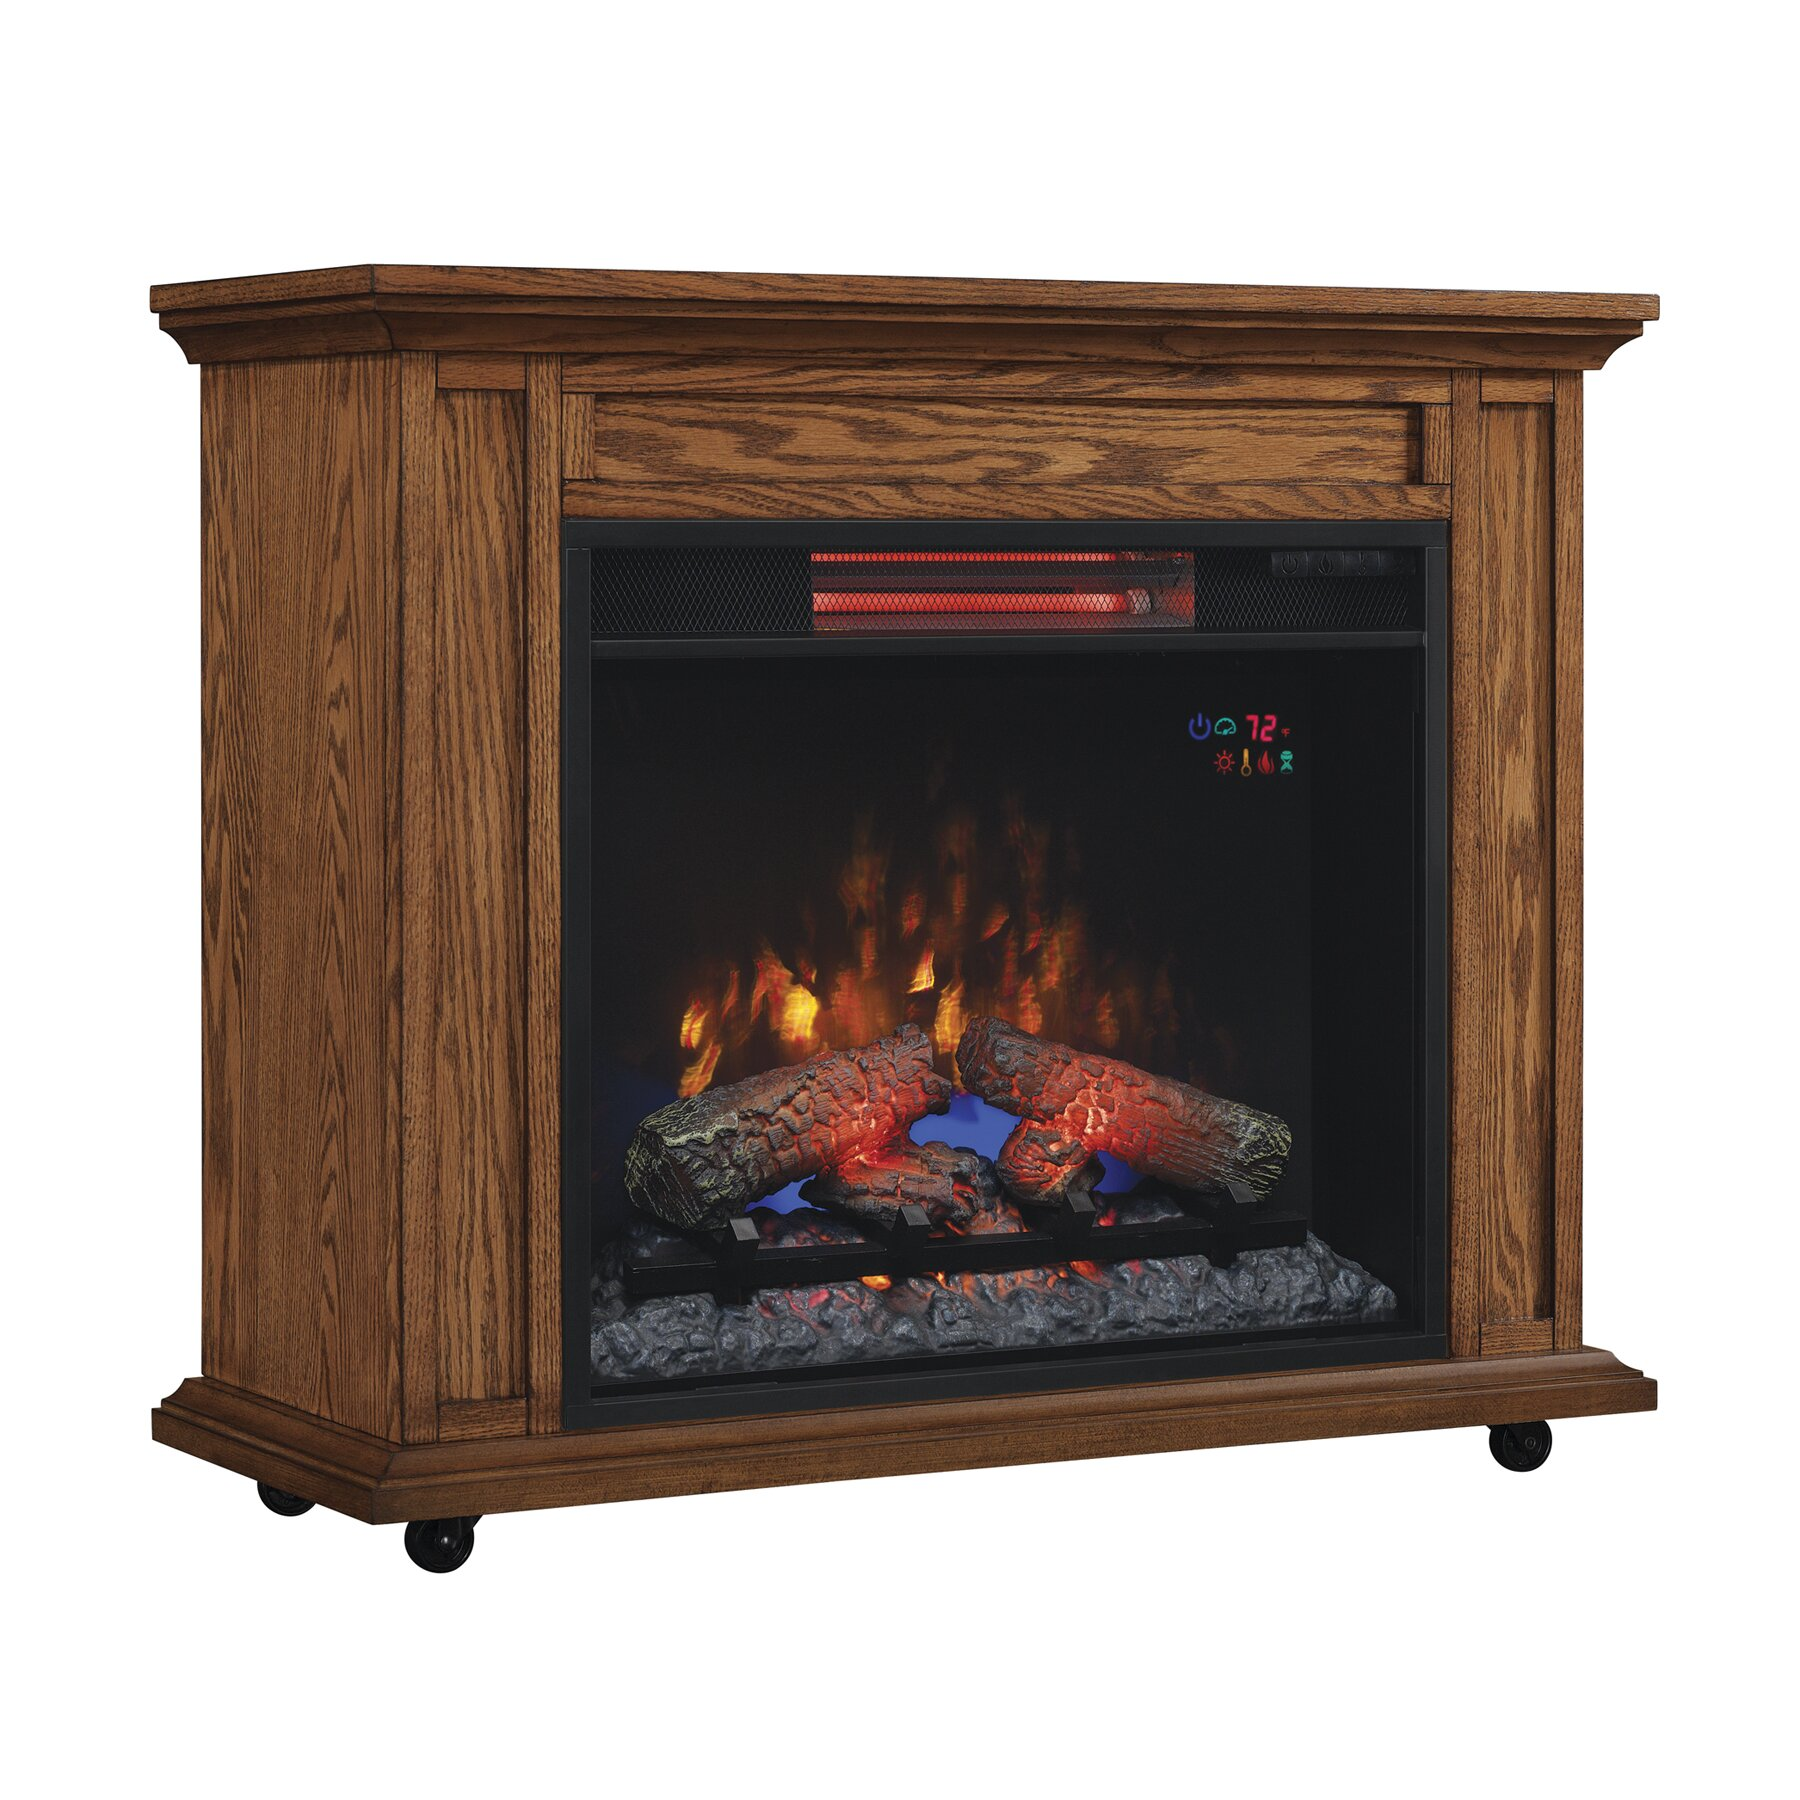 Duraflame Rolling Mantel With Infrared Quartz Electric Fireplace Reviews Wayfair